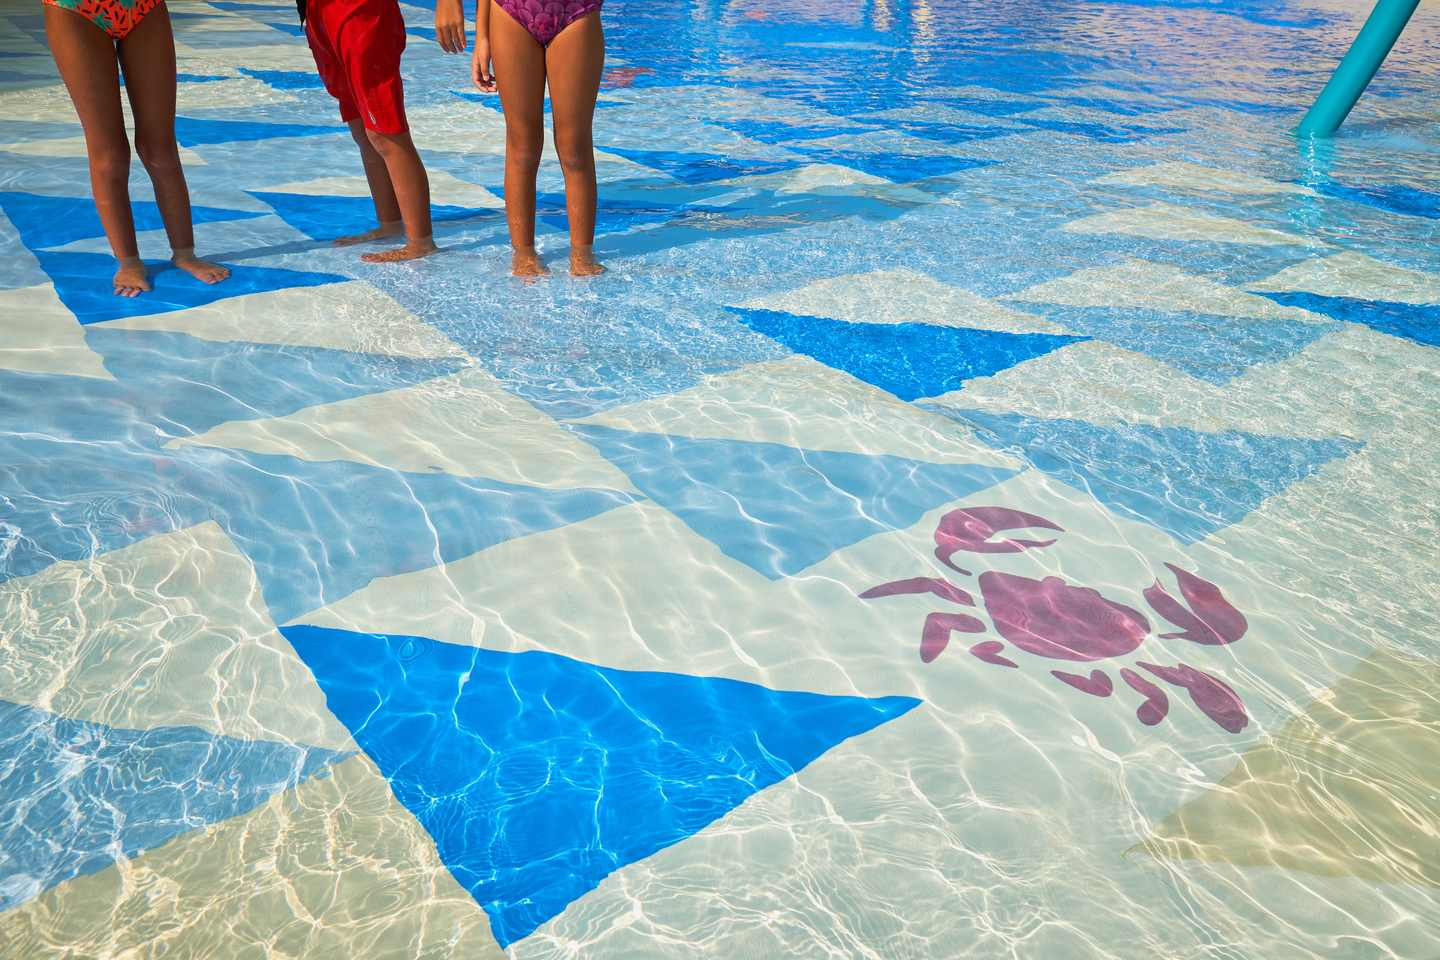 Atlantis_The_Palm_Splash_Pad_RGR28029.jpg